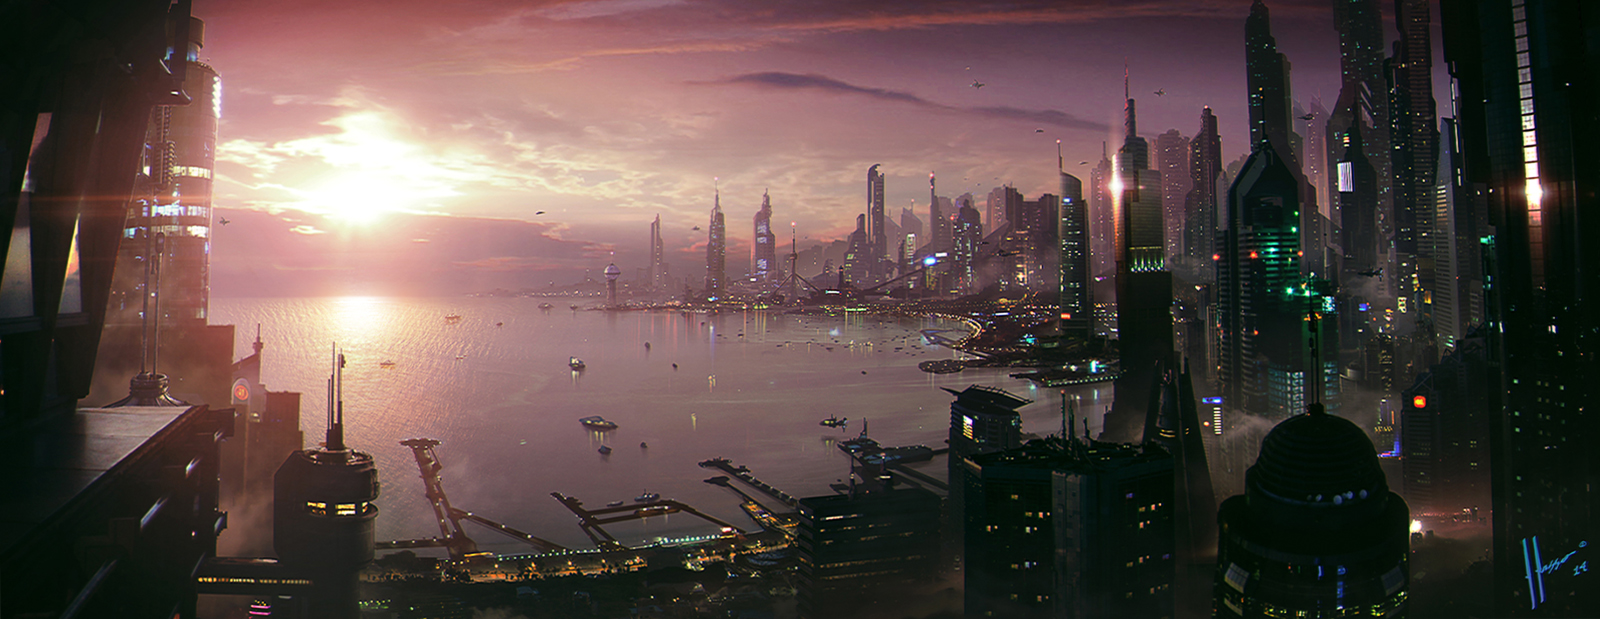 City by the Bay by JJasso